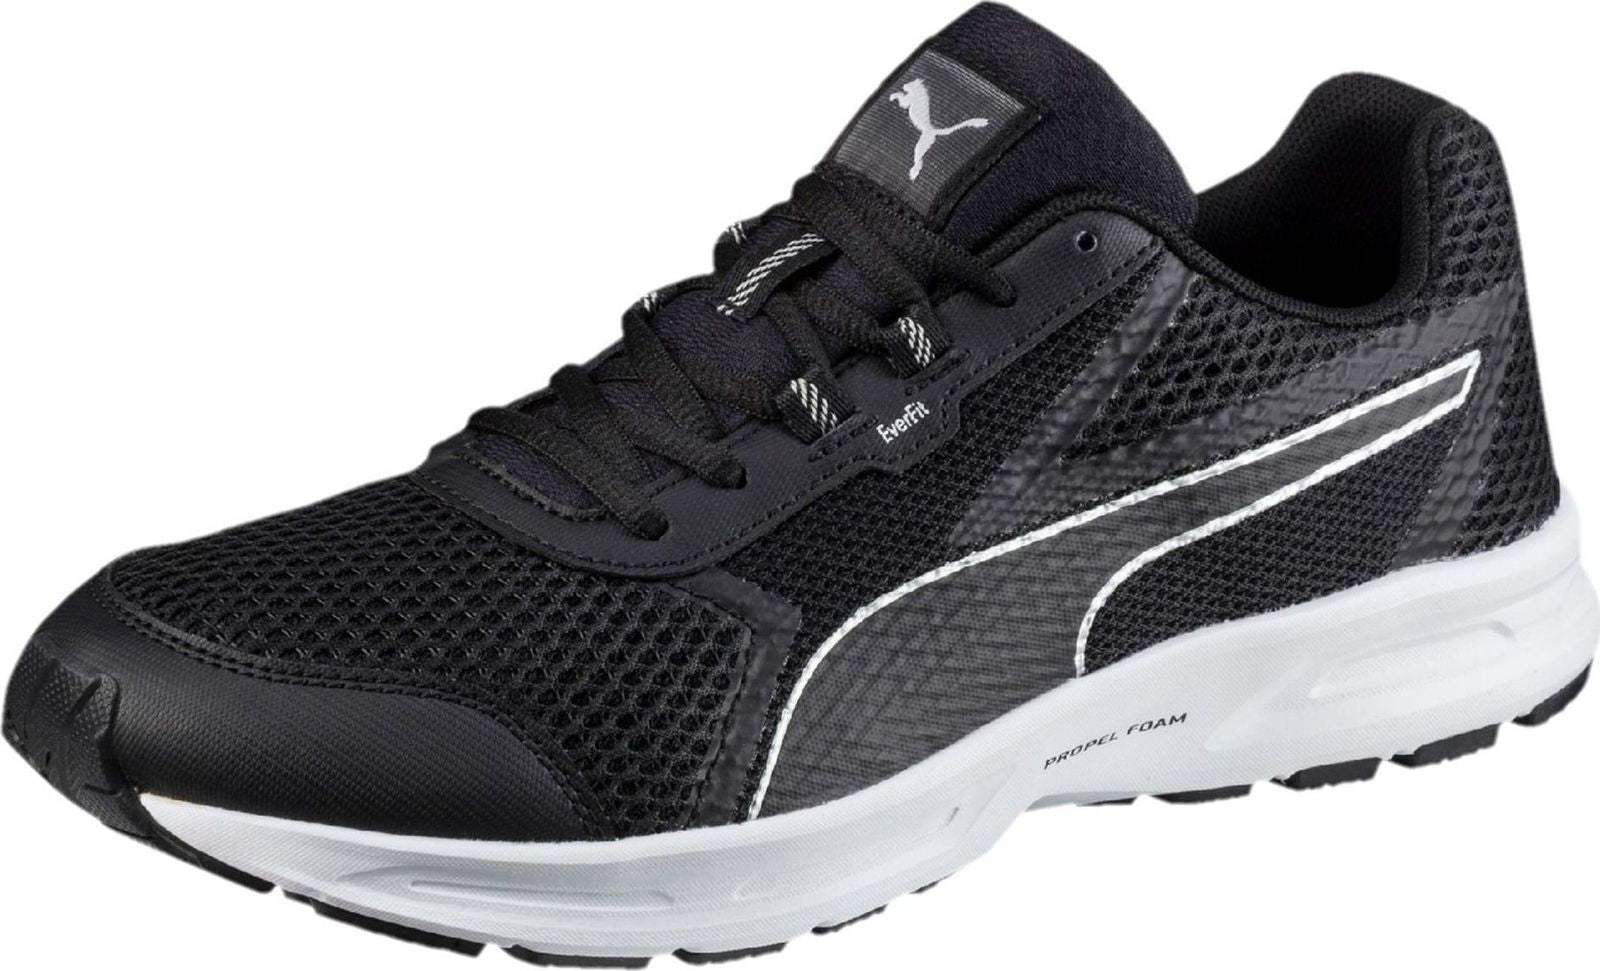 ffa9cbf2a486 PUMA ESSENTIAL RUNNER MENS 189961 06 – Jim Kidd Sports